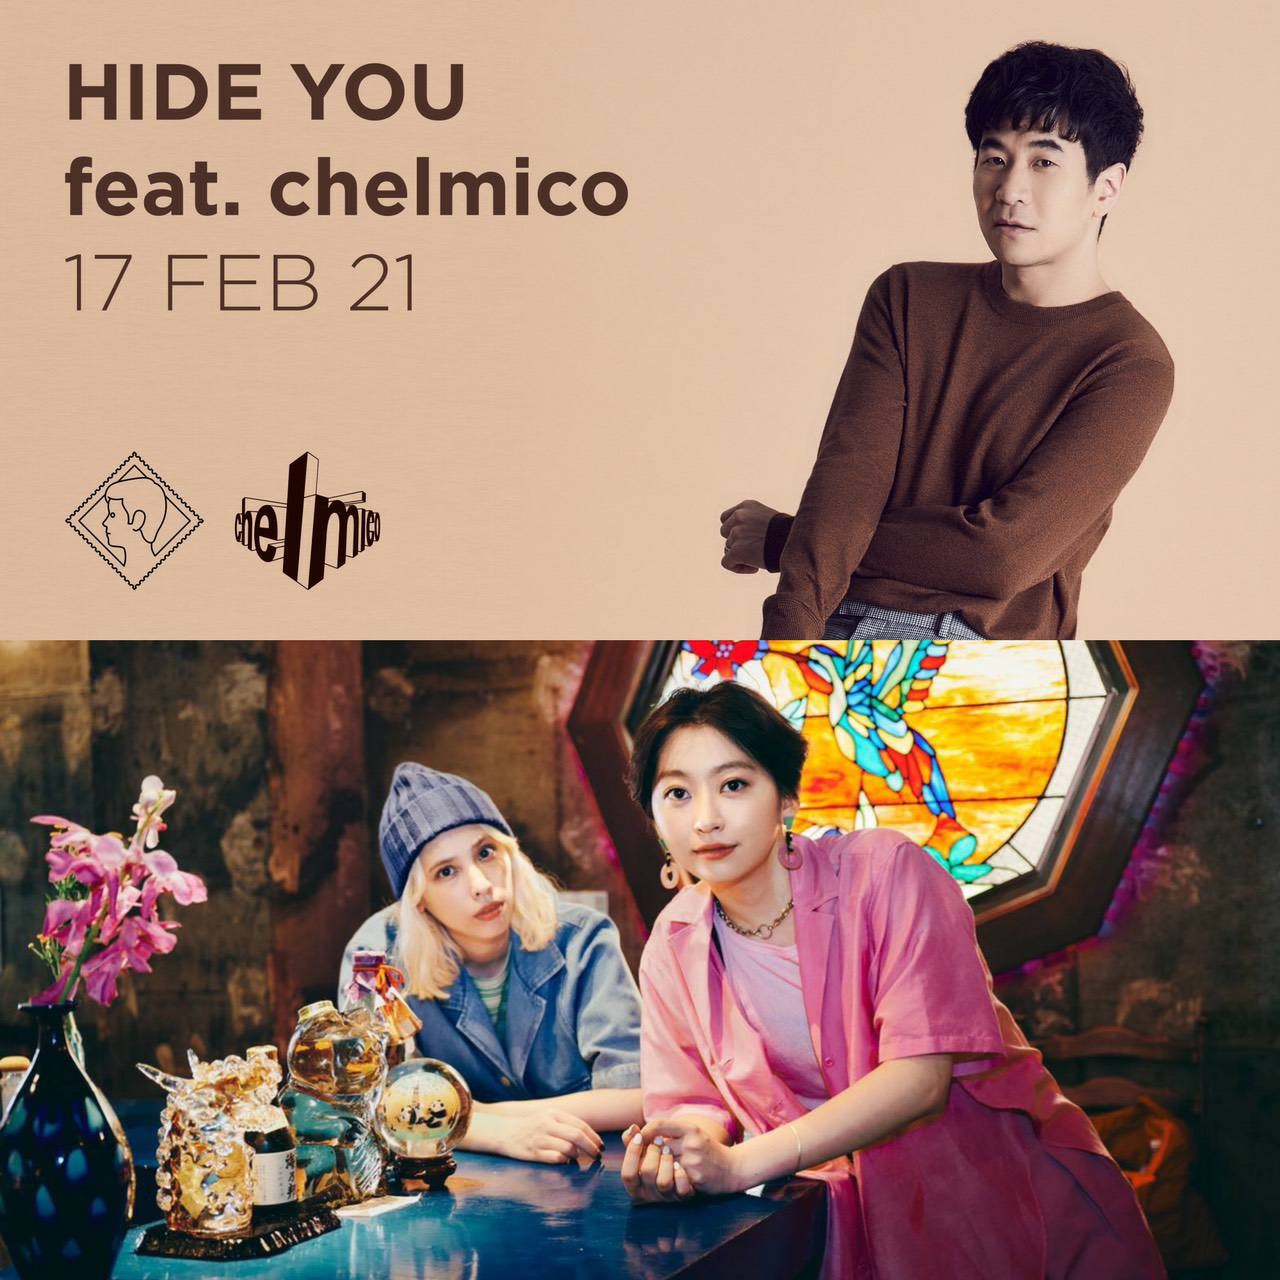 STAMP x chelmico コラボ曲 「HIDE YOU feat. chelmico」2/17 配信!